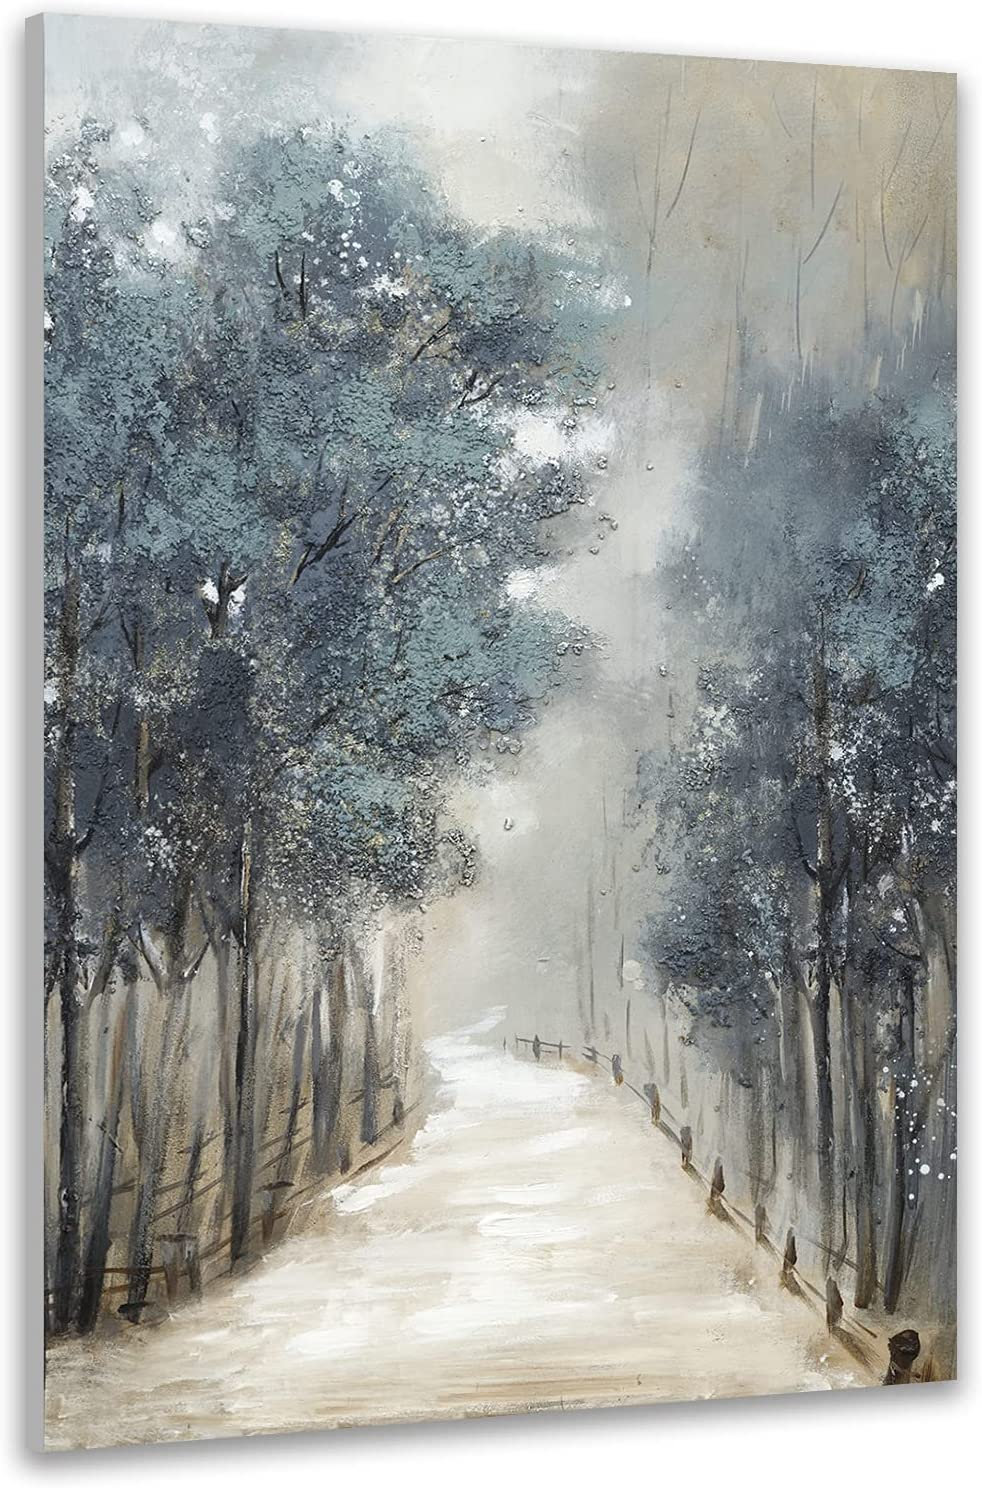 TRAIN2 ART Tree Wall Art for Living Room Hand-Painted Forest Oil Painting Wall Art on Canvas, Abstract Oil Paintings Modern Home Decor Landscape Artwork Stretched and Framed Ready to Hang 24